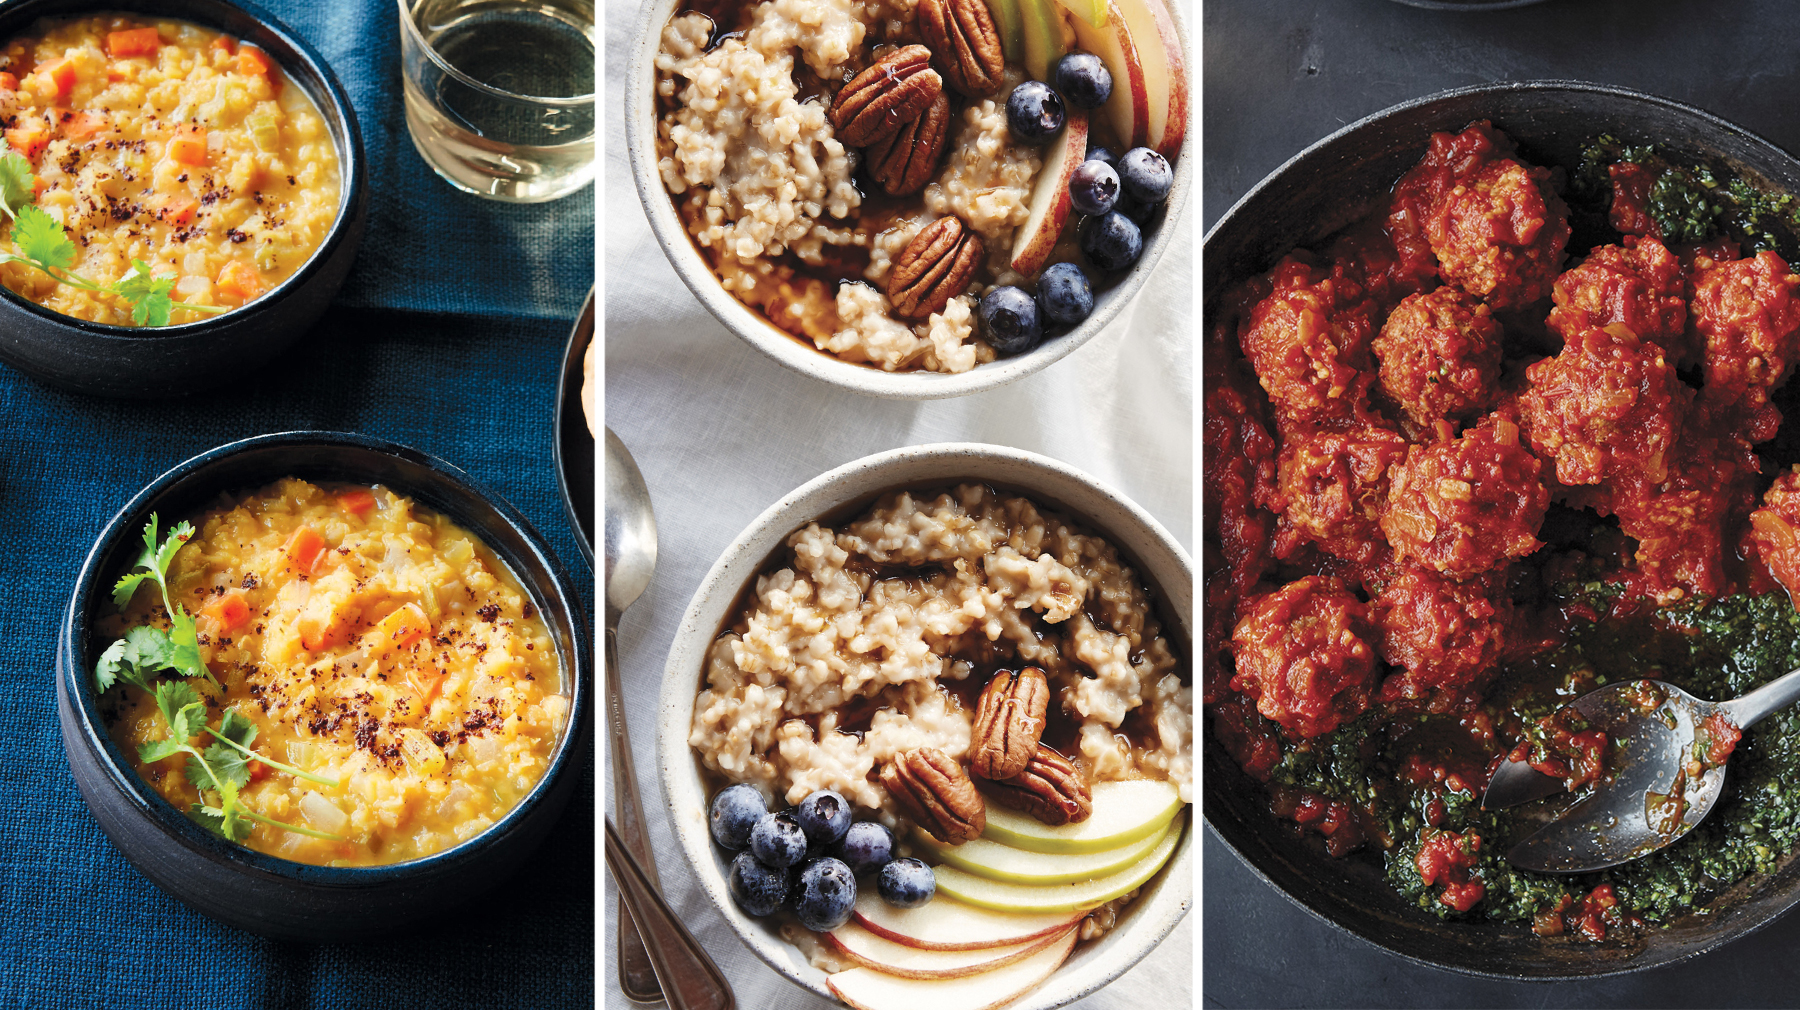 3 Instant Pot Recipes That Are Packed With Fall Superfoods